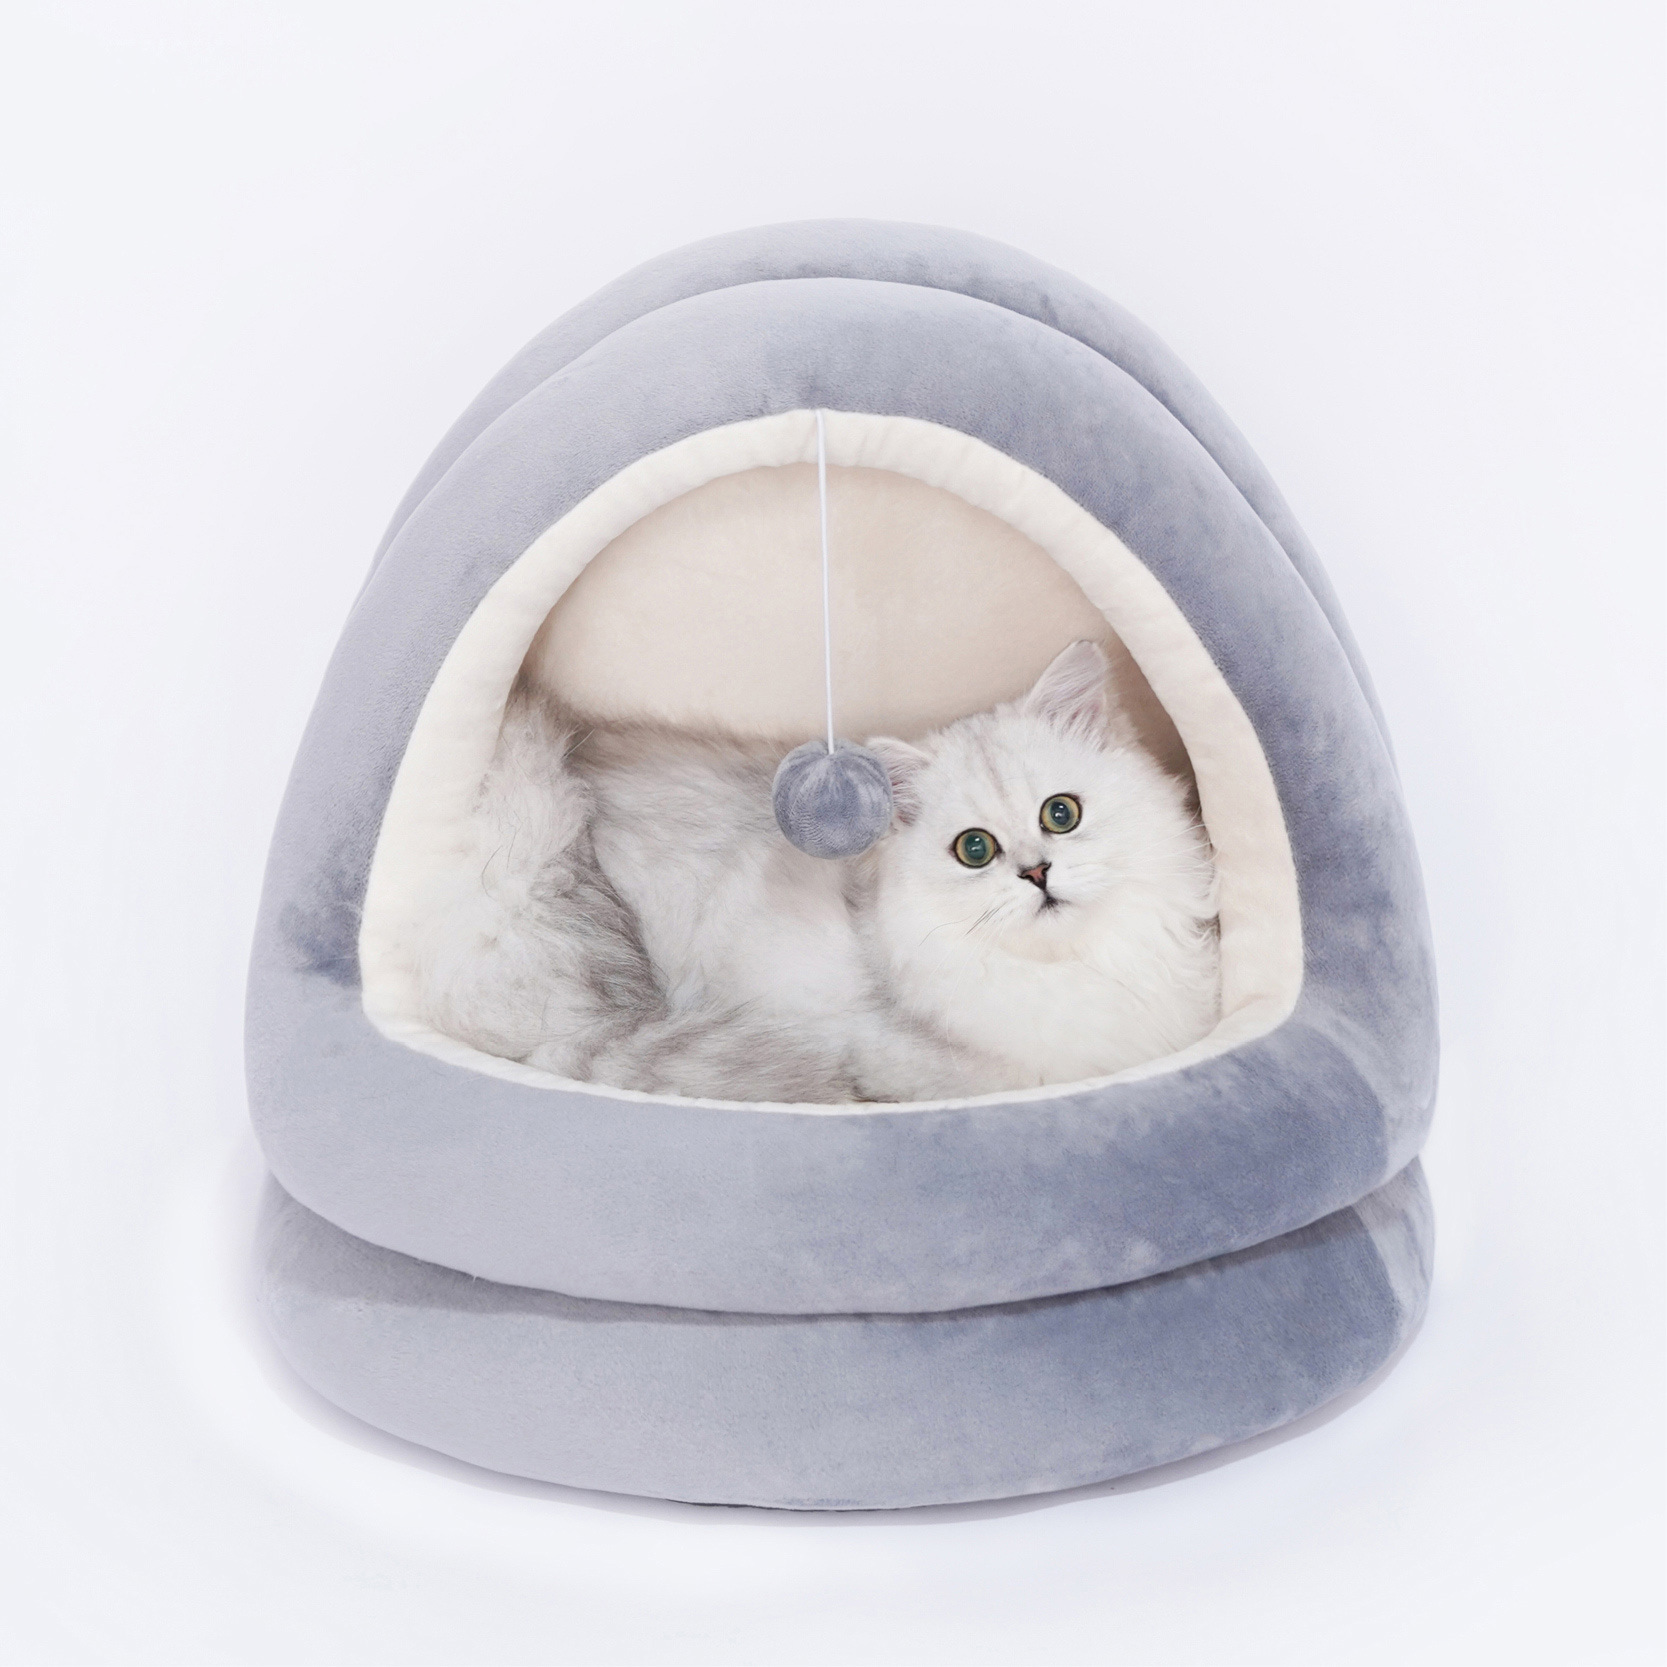 Cat nest all season closed cat products washable teddy kennel pet house cat bed house pet supplies warm and comfortable